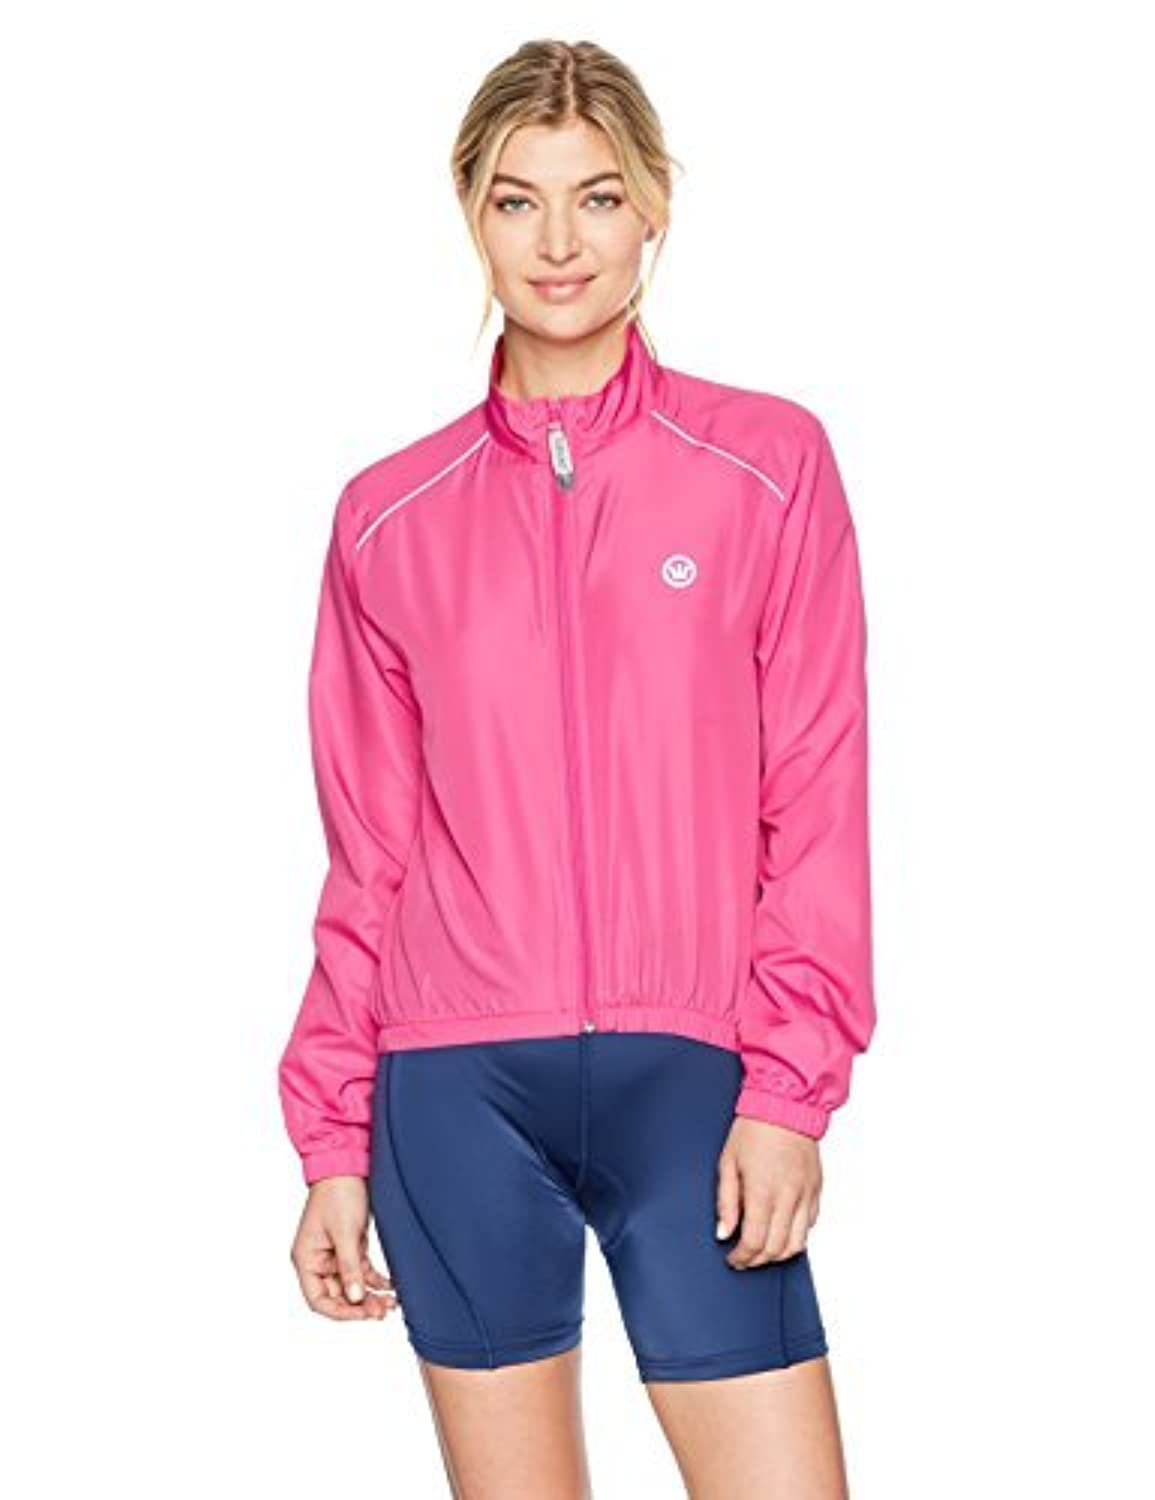 Canari Women's 3 Season Cycle Shell Panther Pink Medium [並行輸入品]